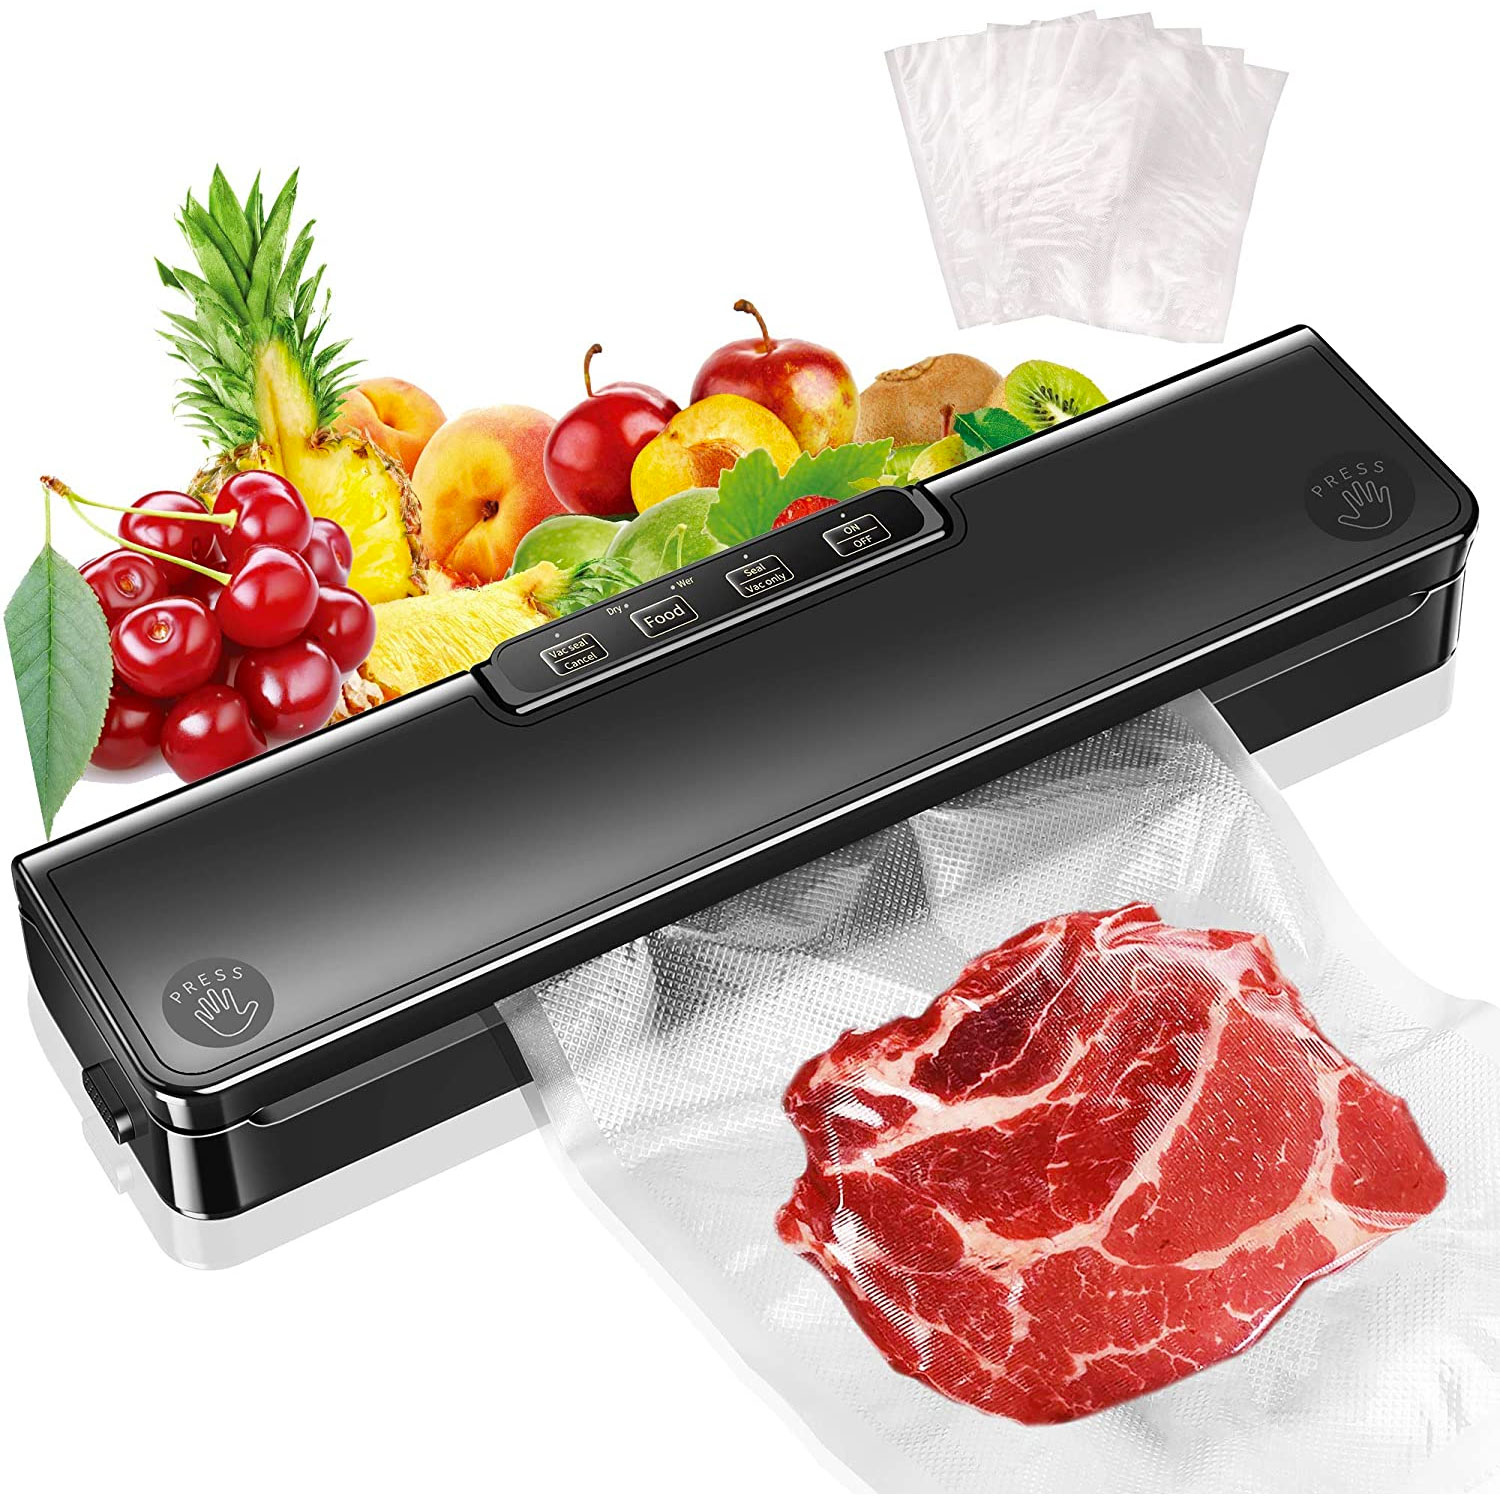 Food vacuum sealer from Amazon